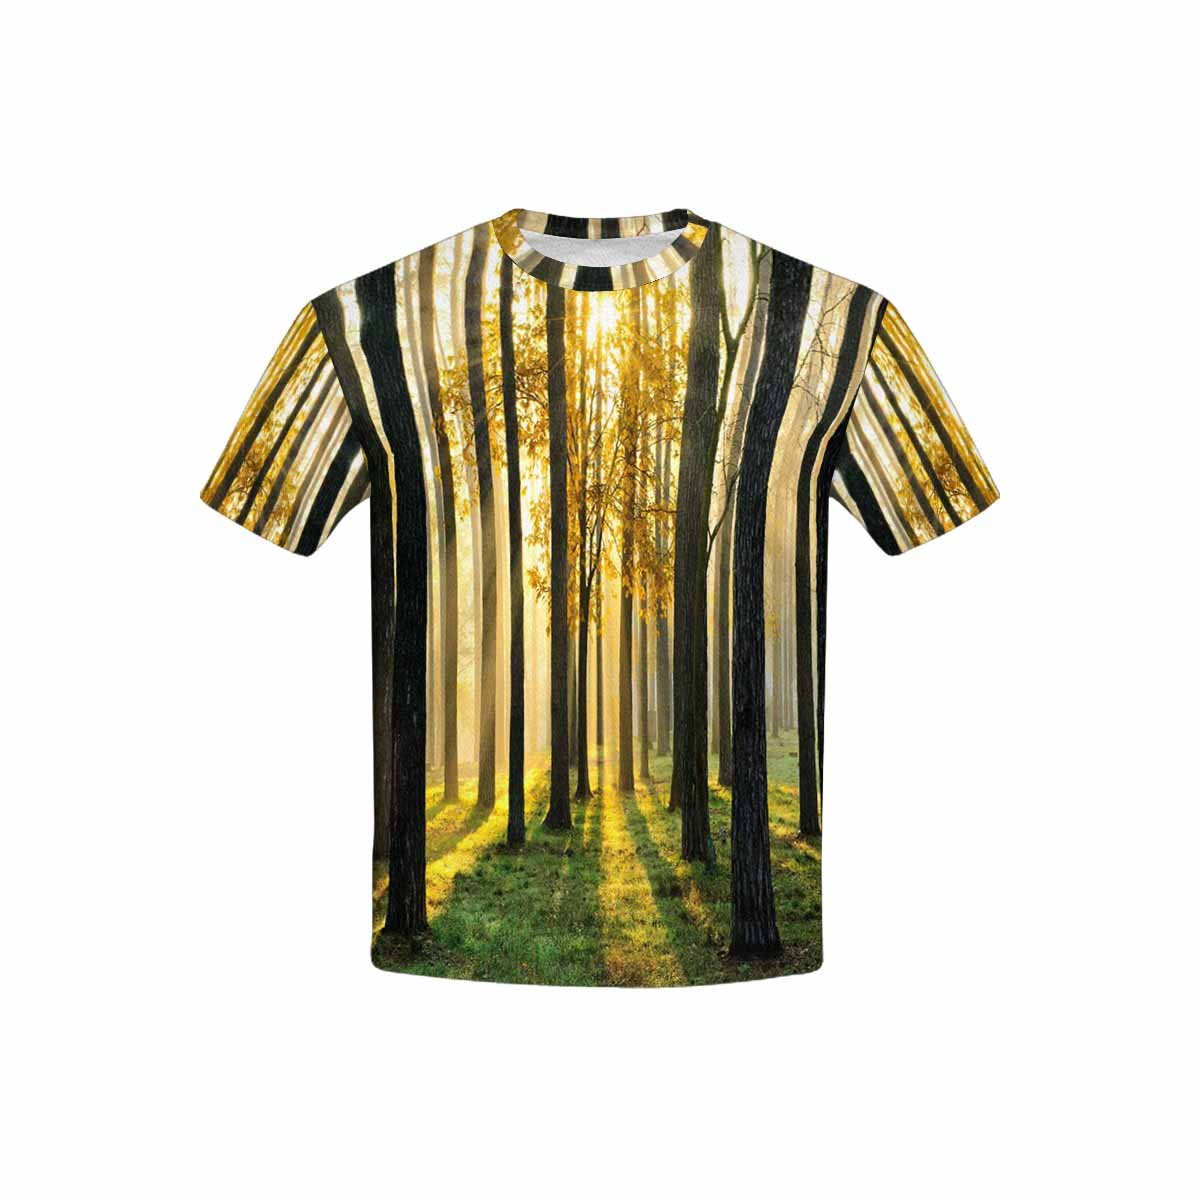 INTERESTPRINT Forest with Sun Rays and Shadows Kids T-Shirt XS-XL